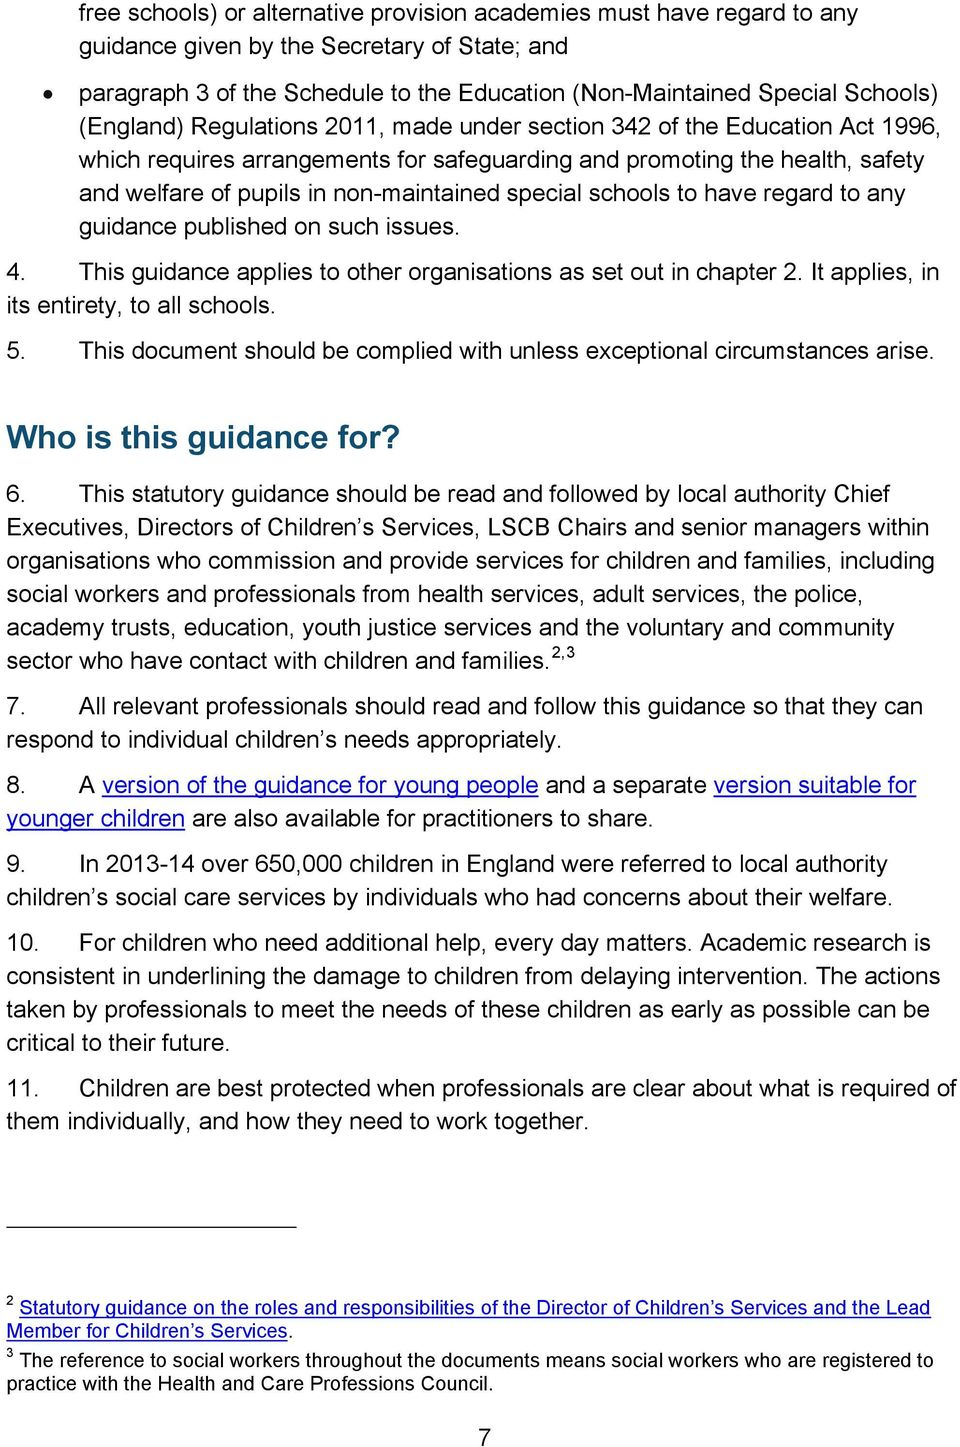 special schools to have regard to any guidance published on such issues. 4. This guidance applies to other organisations as set out in chapter 2. It applies, in its entirety, to all schools. 5.